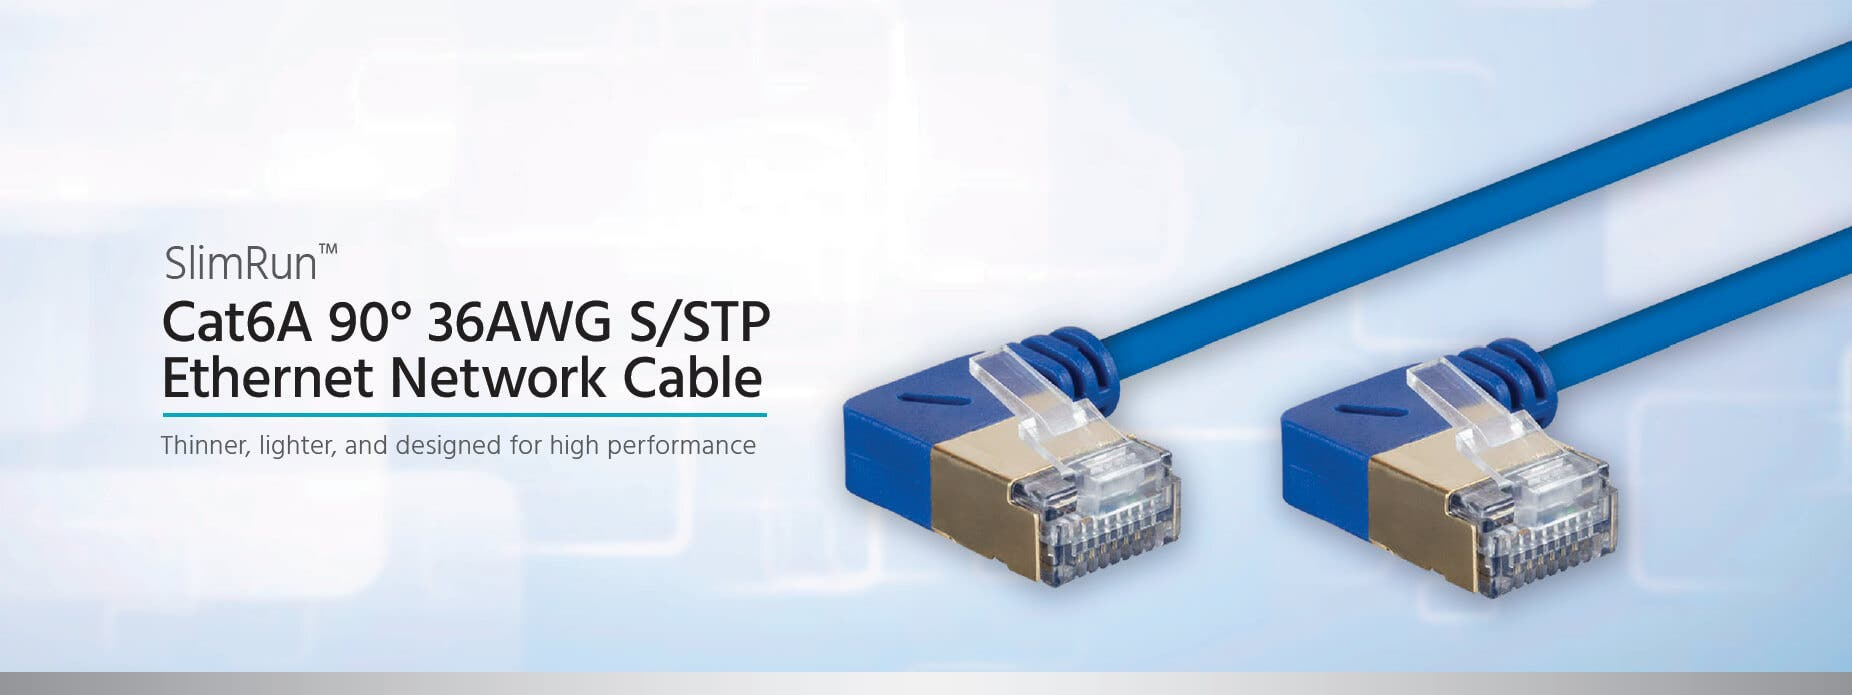 monoprice slimrun™ cat6a s/stp ethernet network patch cables are designed  for high performance 10g environments  slimrun cat6a s/stp is much thinner  and